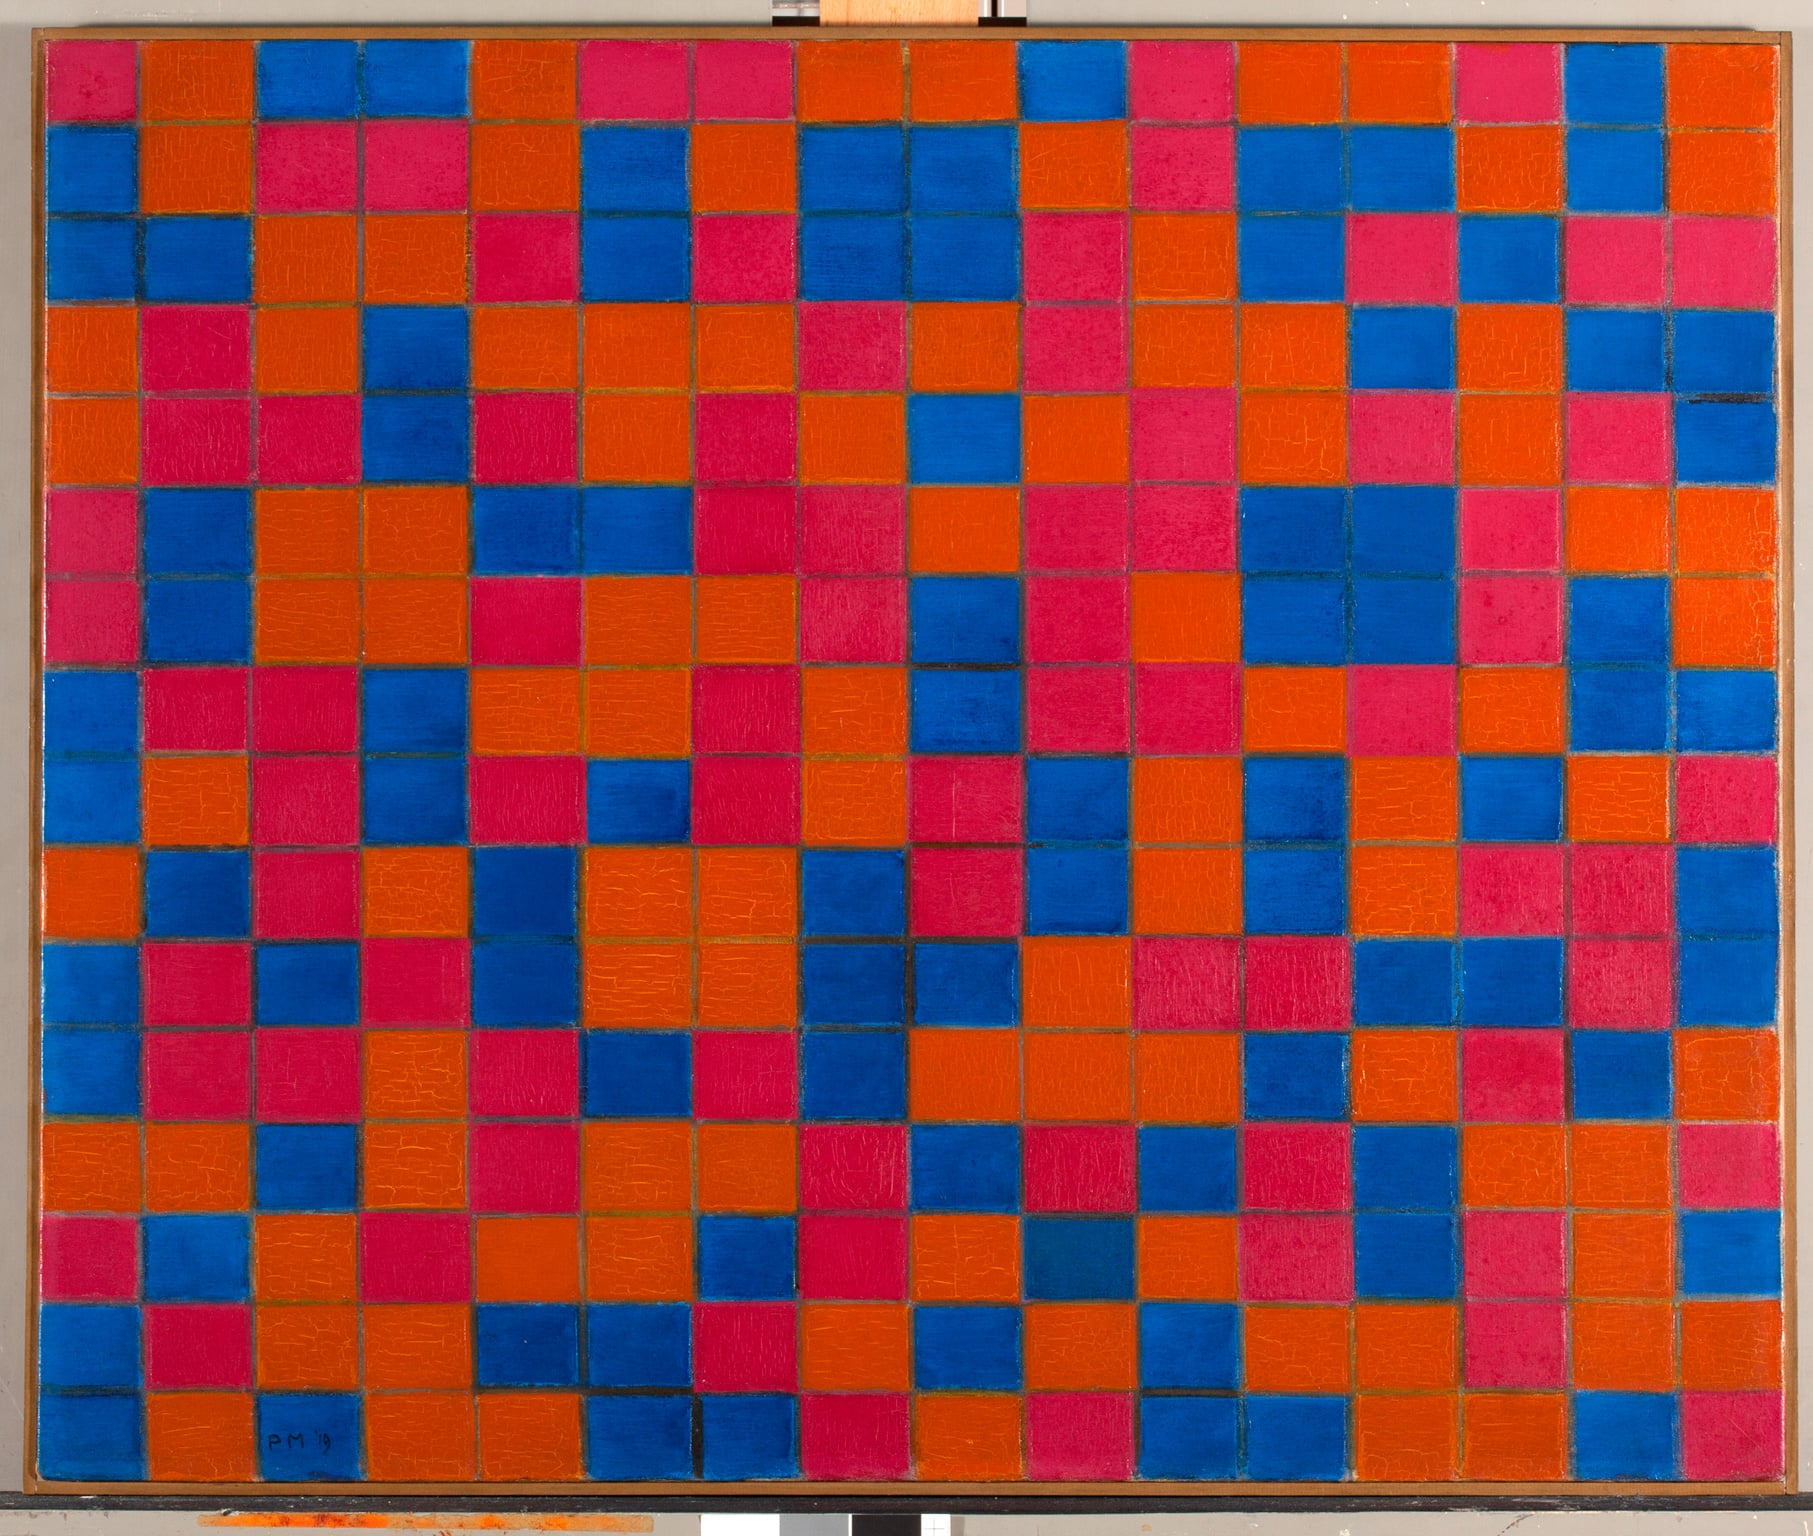 Piet Mondrian, Composition with Grid 8: Checker board Composition with Dark Colours, 1919 – on show at Turner Contemporary - Collection Gemeentemuseum Den Haag, The Netherlands © 2013 Mondrian/Holtzman Trust c/o HCR International USA